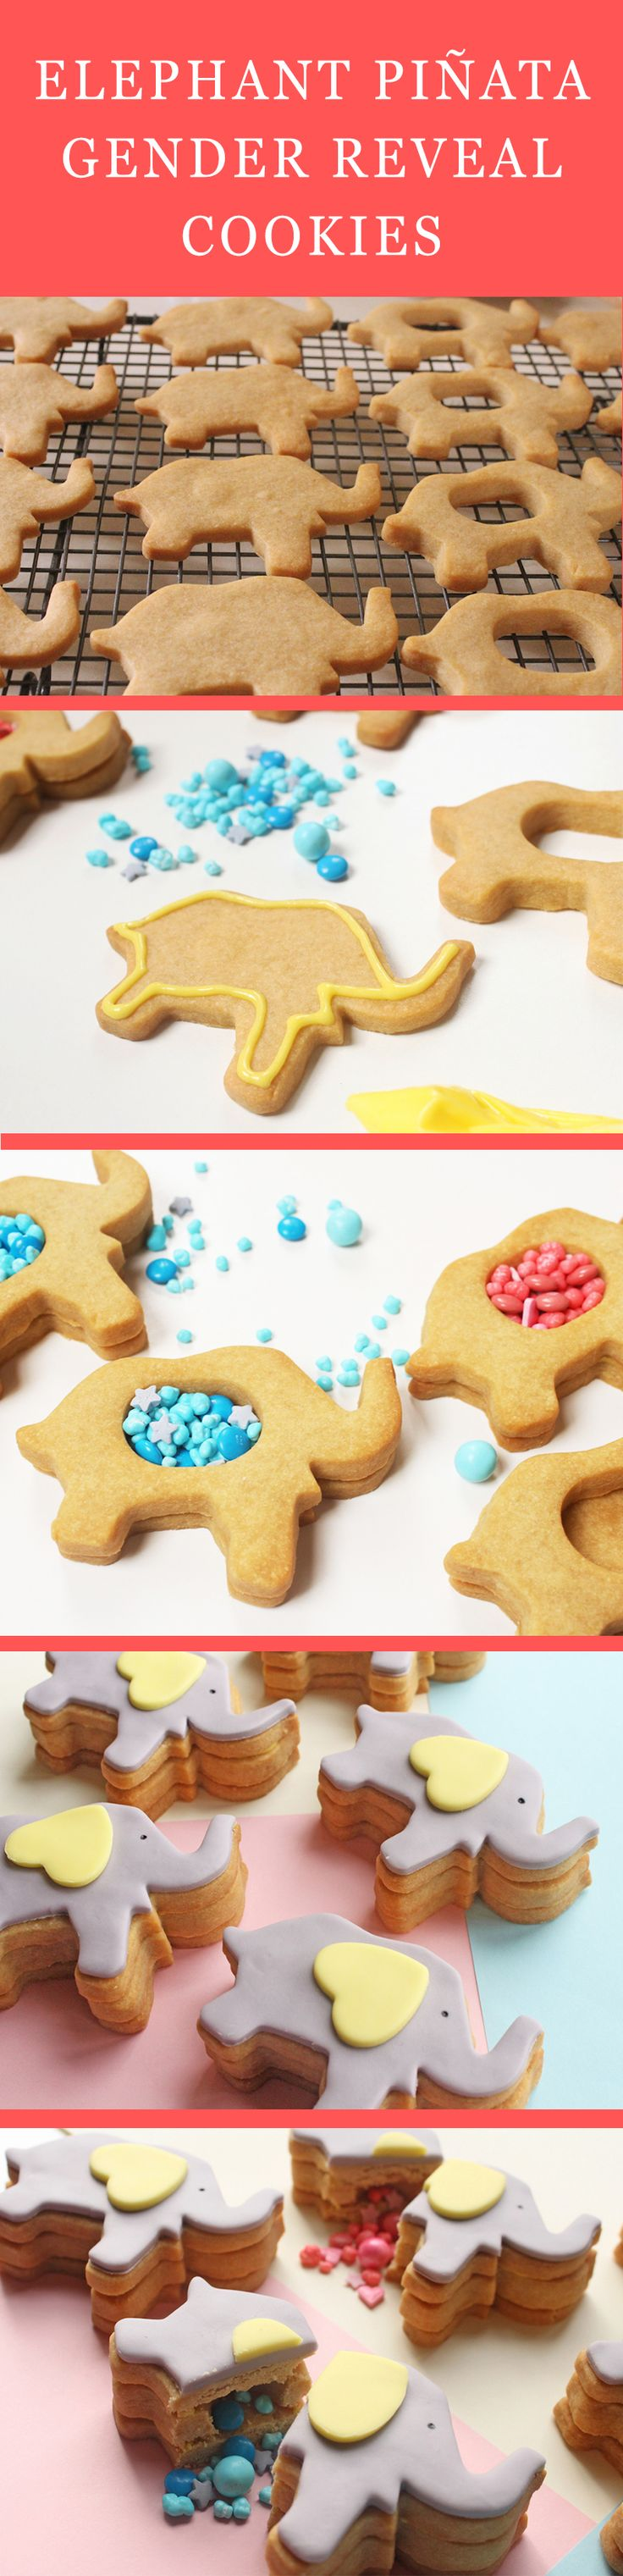 Make your gender reveal extra special — and tasty! Set aside some time to follow this recipe for elephant piñata gender reveal cookies. | [ http://www.babble.com/best-recipes/elephant-pinata-gender-reveal-cookies/ ]